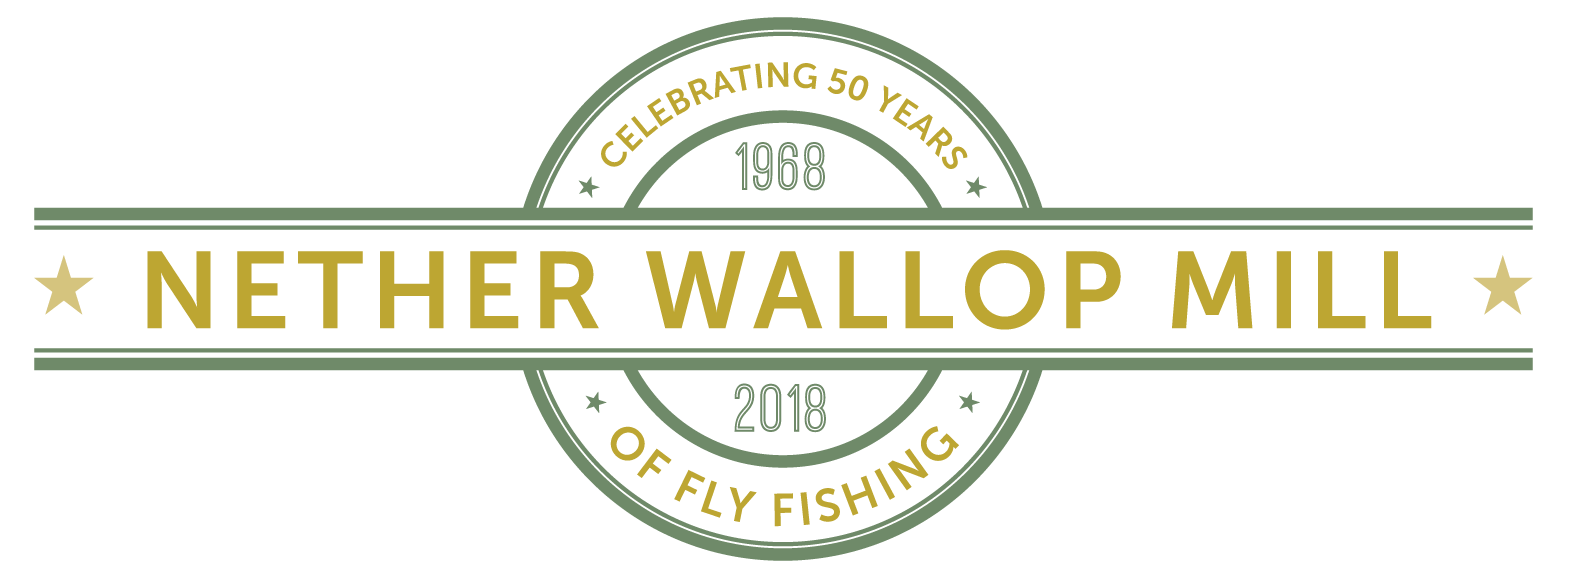 50 years fly fishing